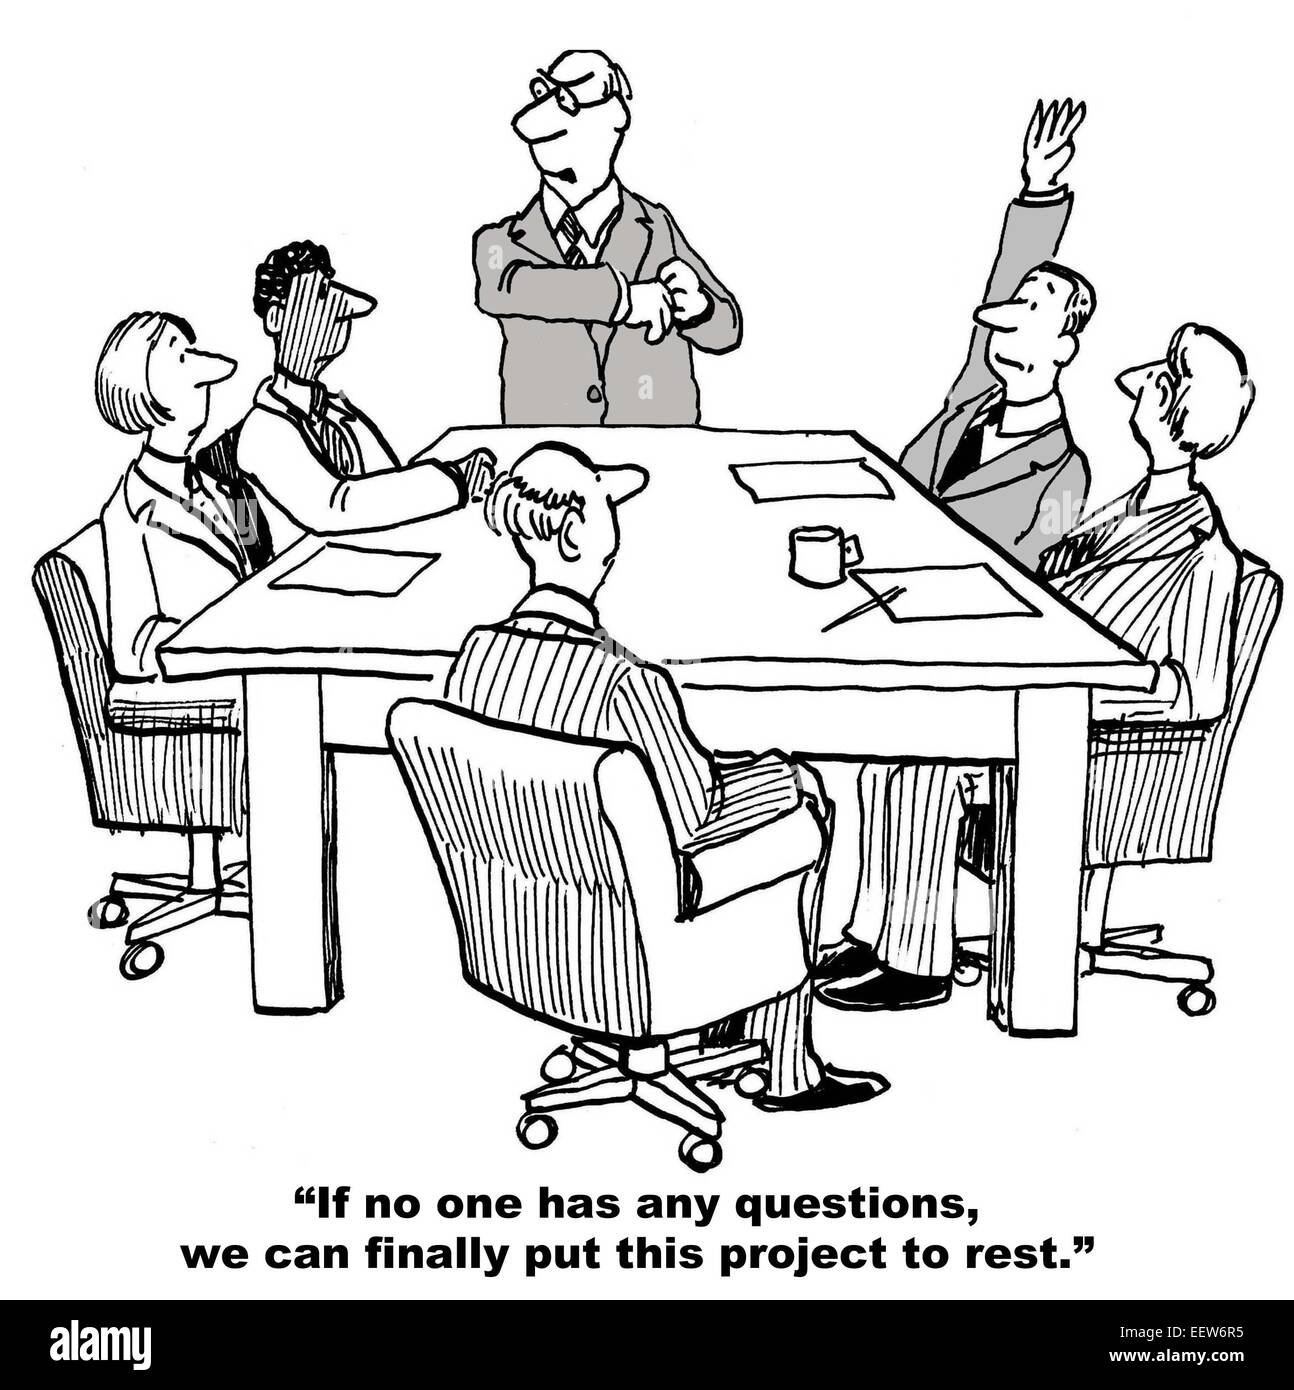 cartoon of business team on last day of project leader says can cartoon of business team on last day of project leader says can finally put project to rest but there is one more question